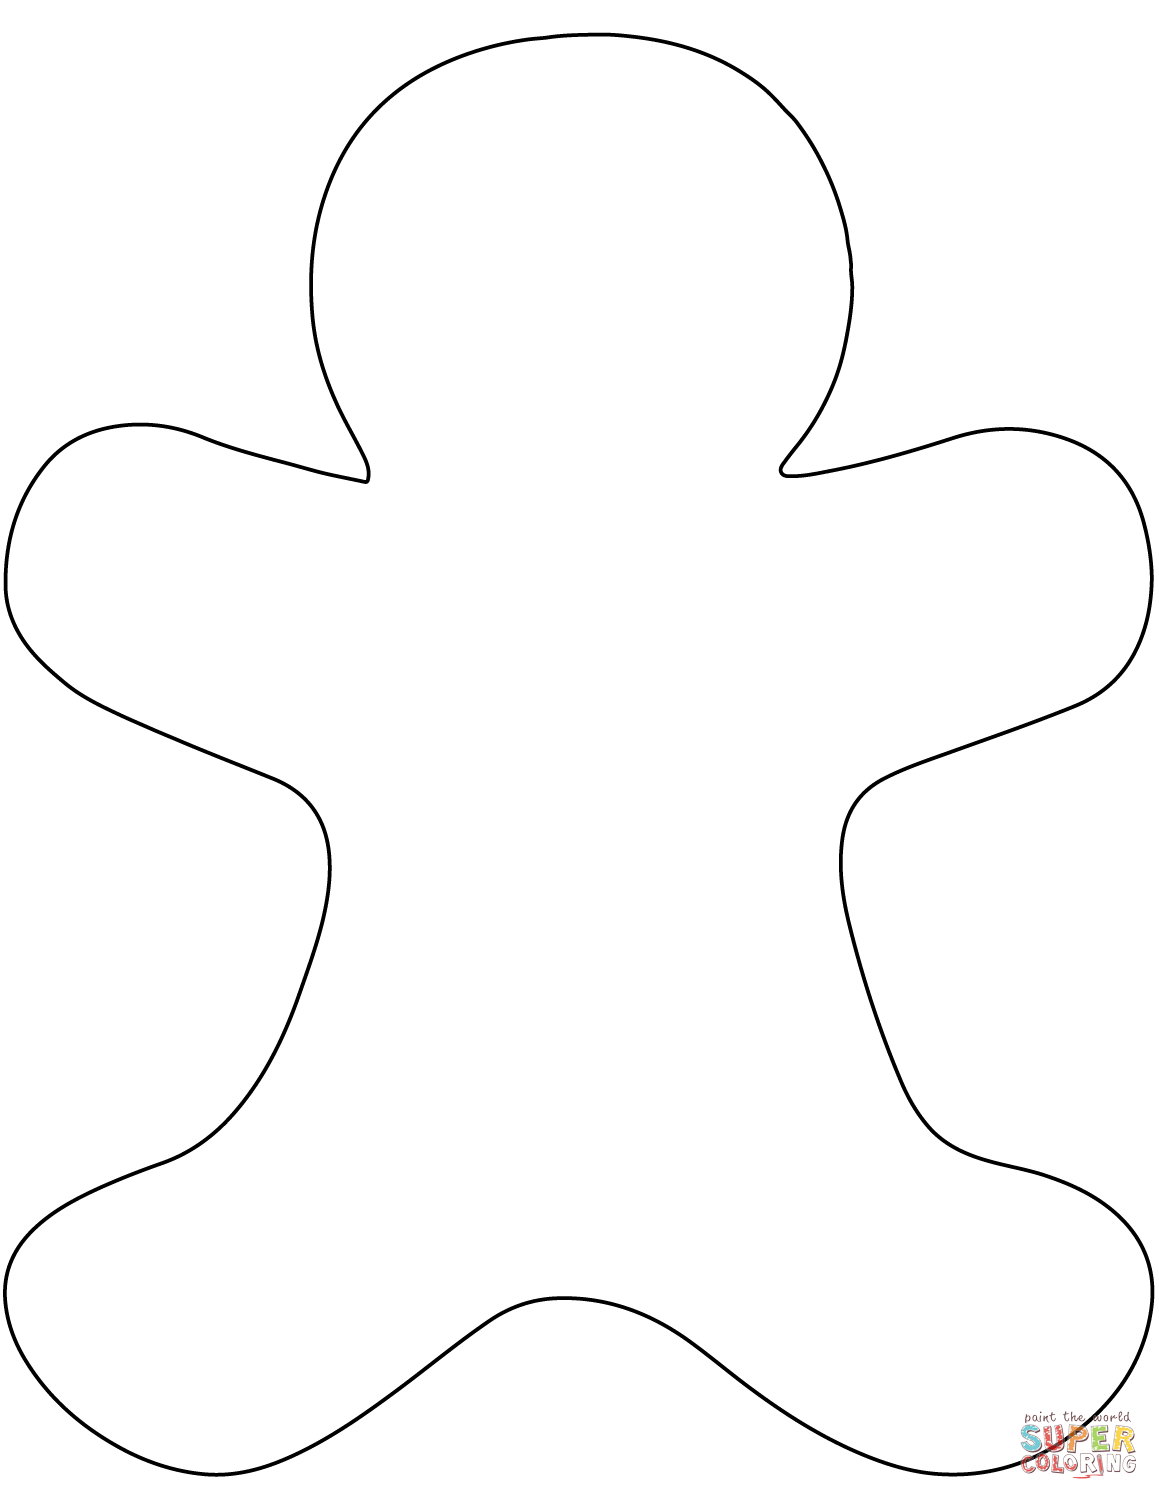 Man coloring page free. Gingerbread clipart blank